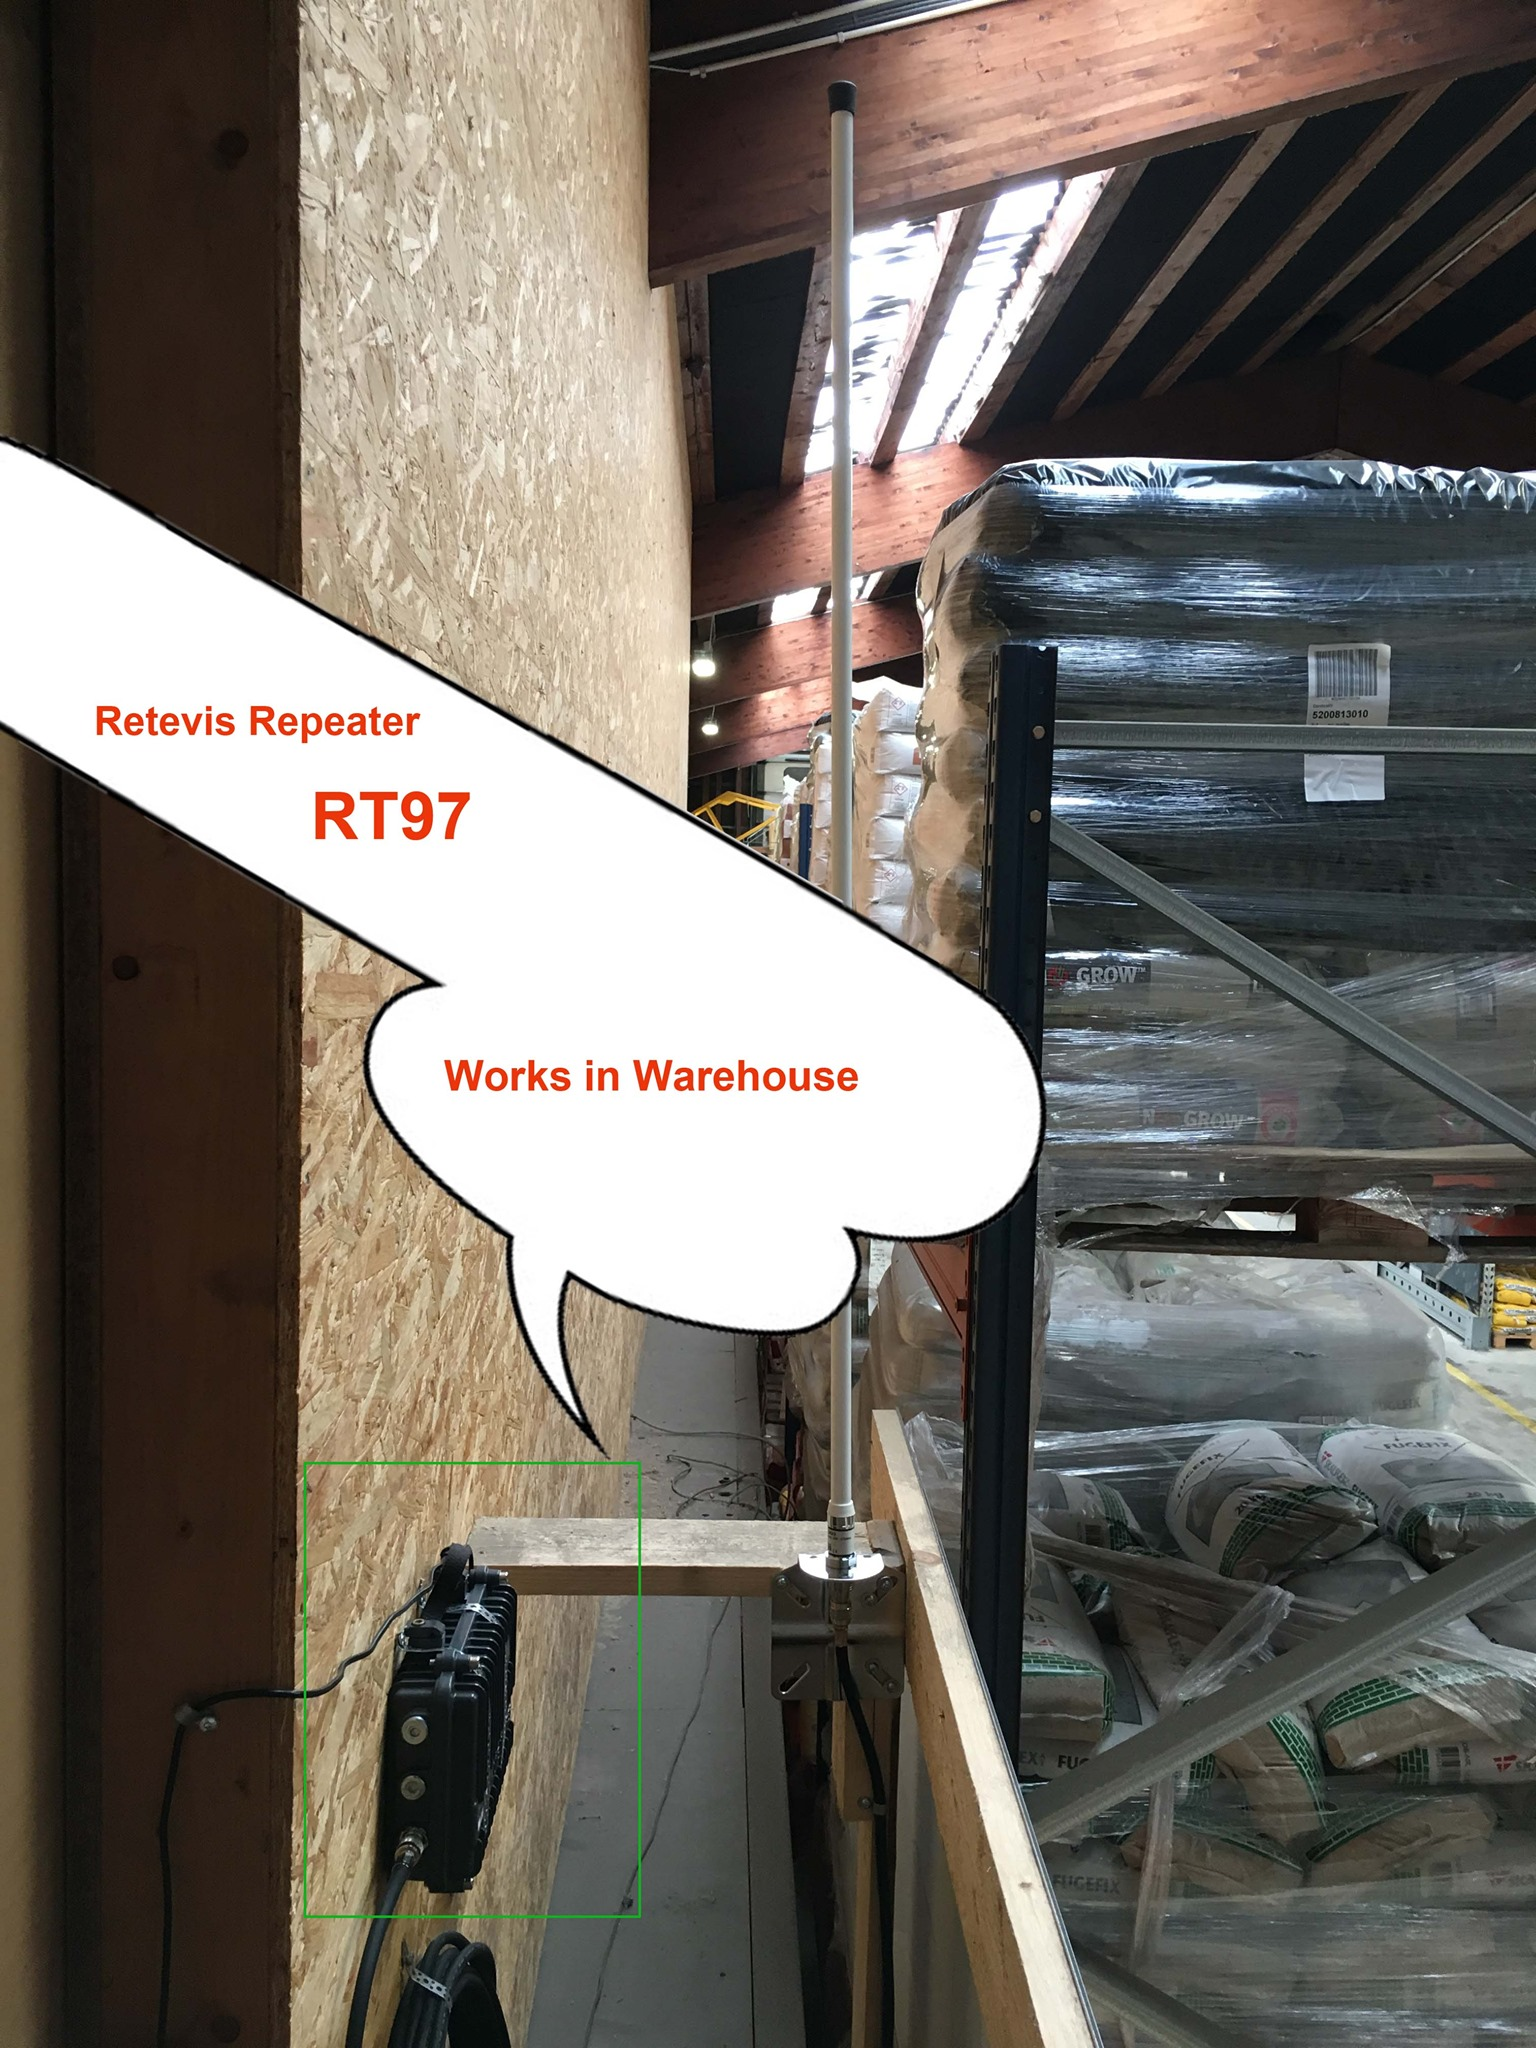 Retevis #RT97 repeater works in the warehouse.